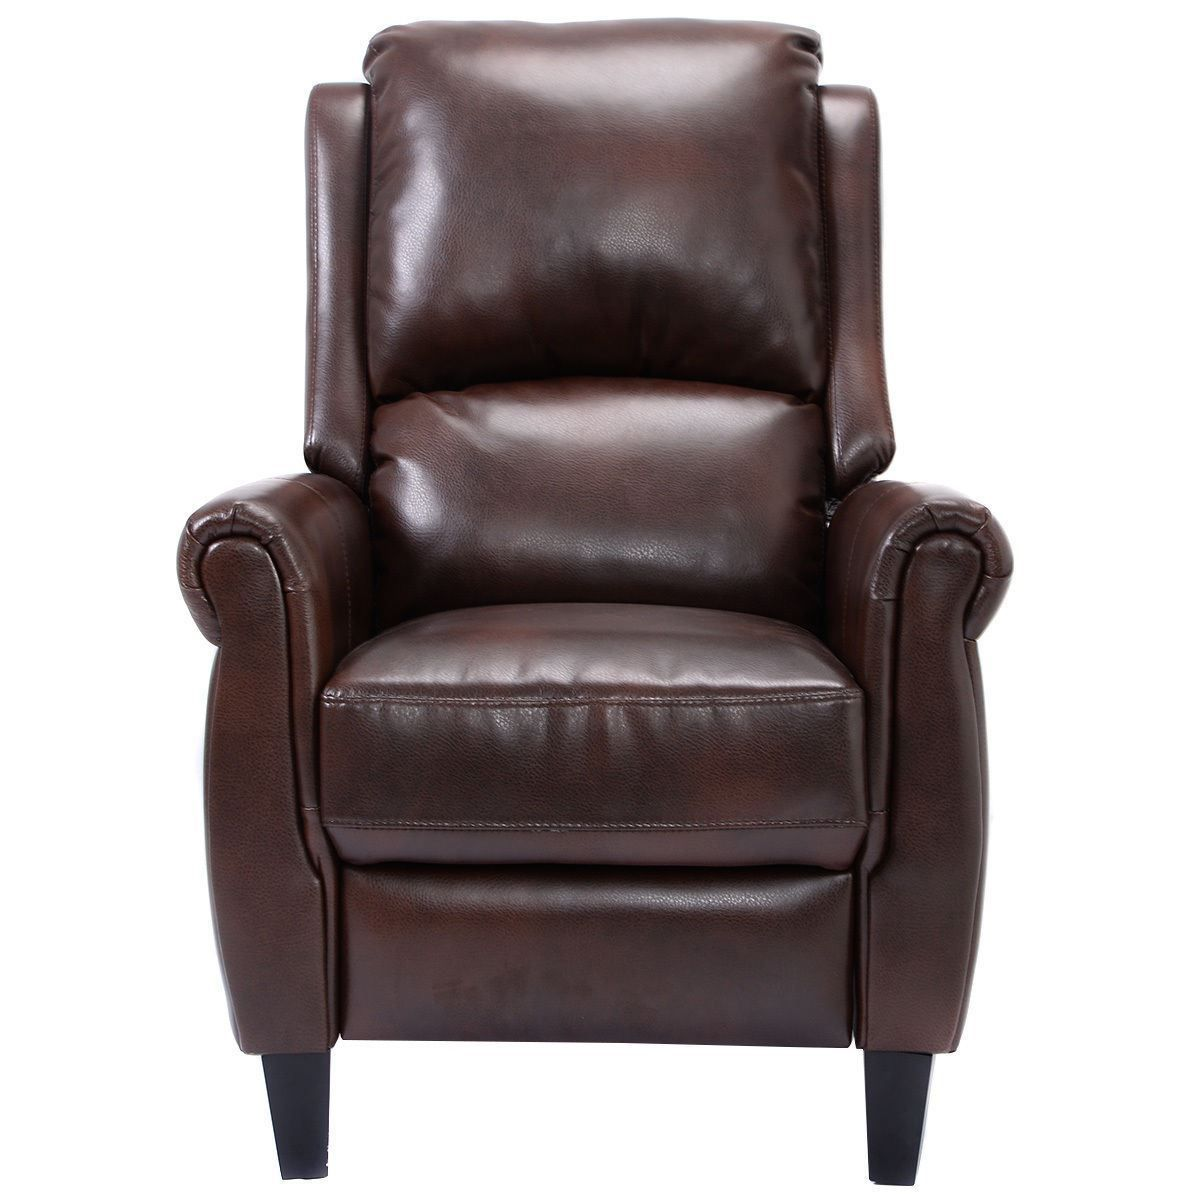 Leather Recliner Accent Chair Push Back Living Room Home